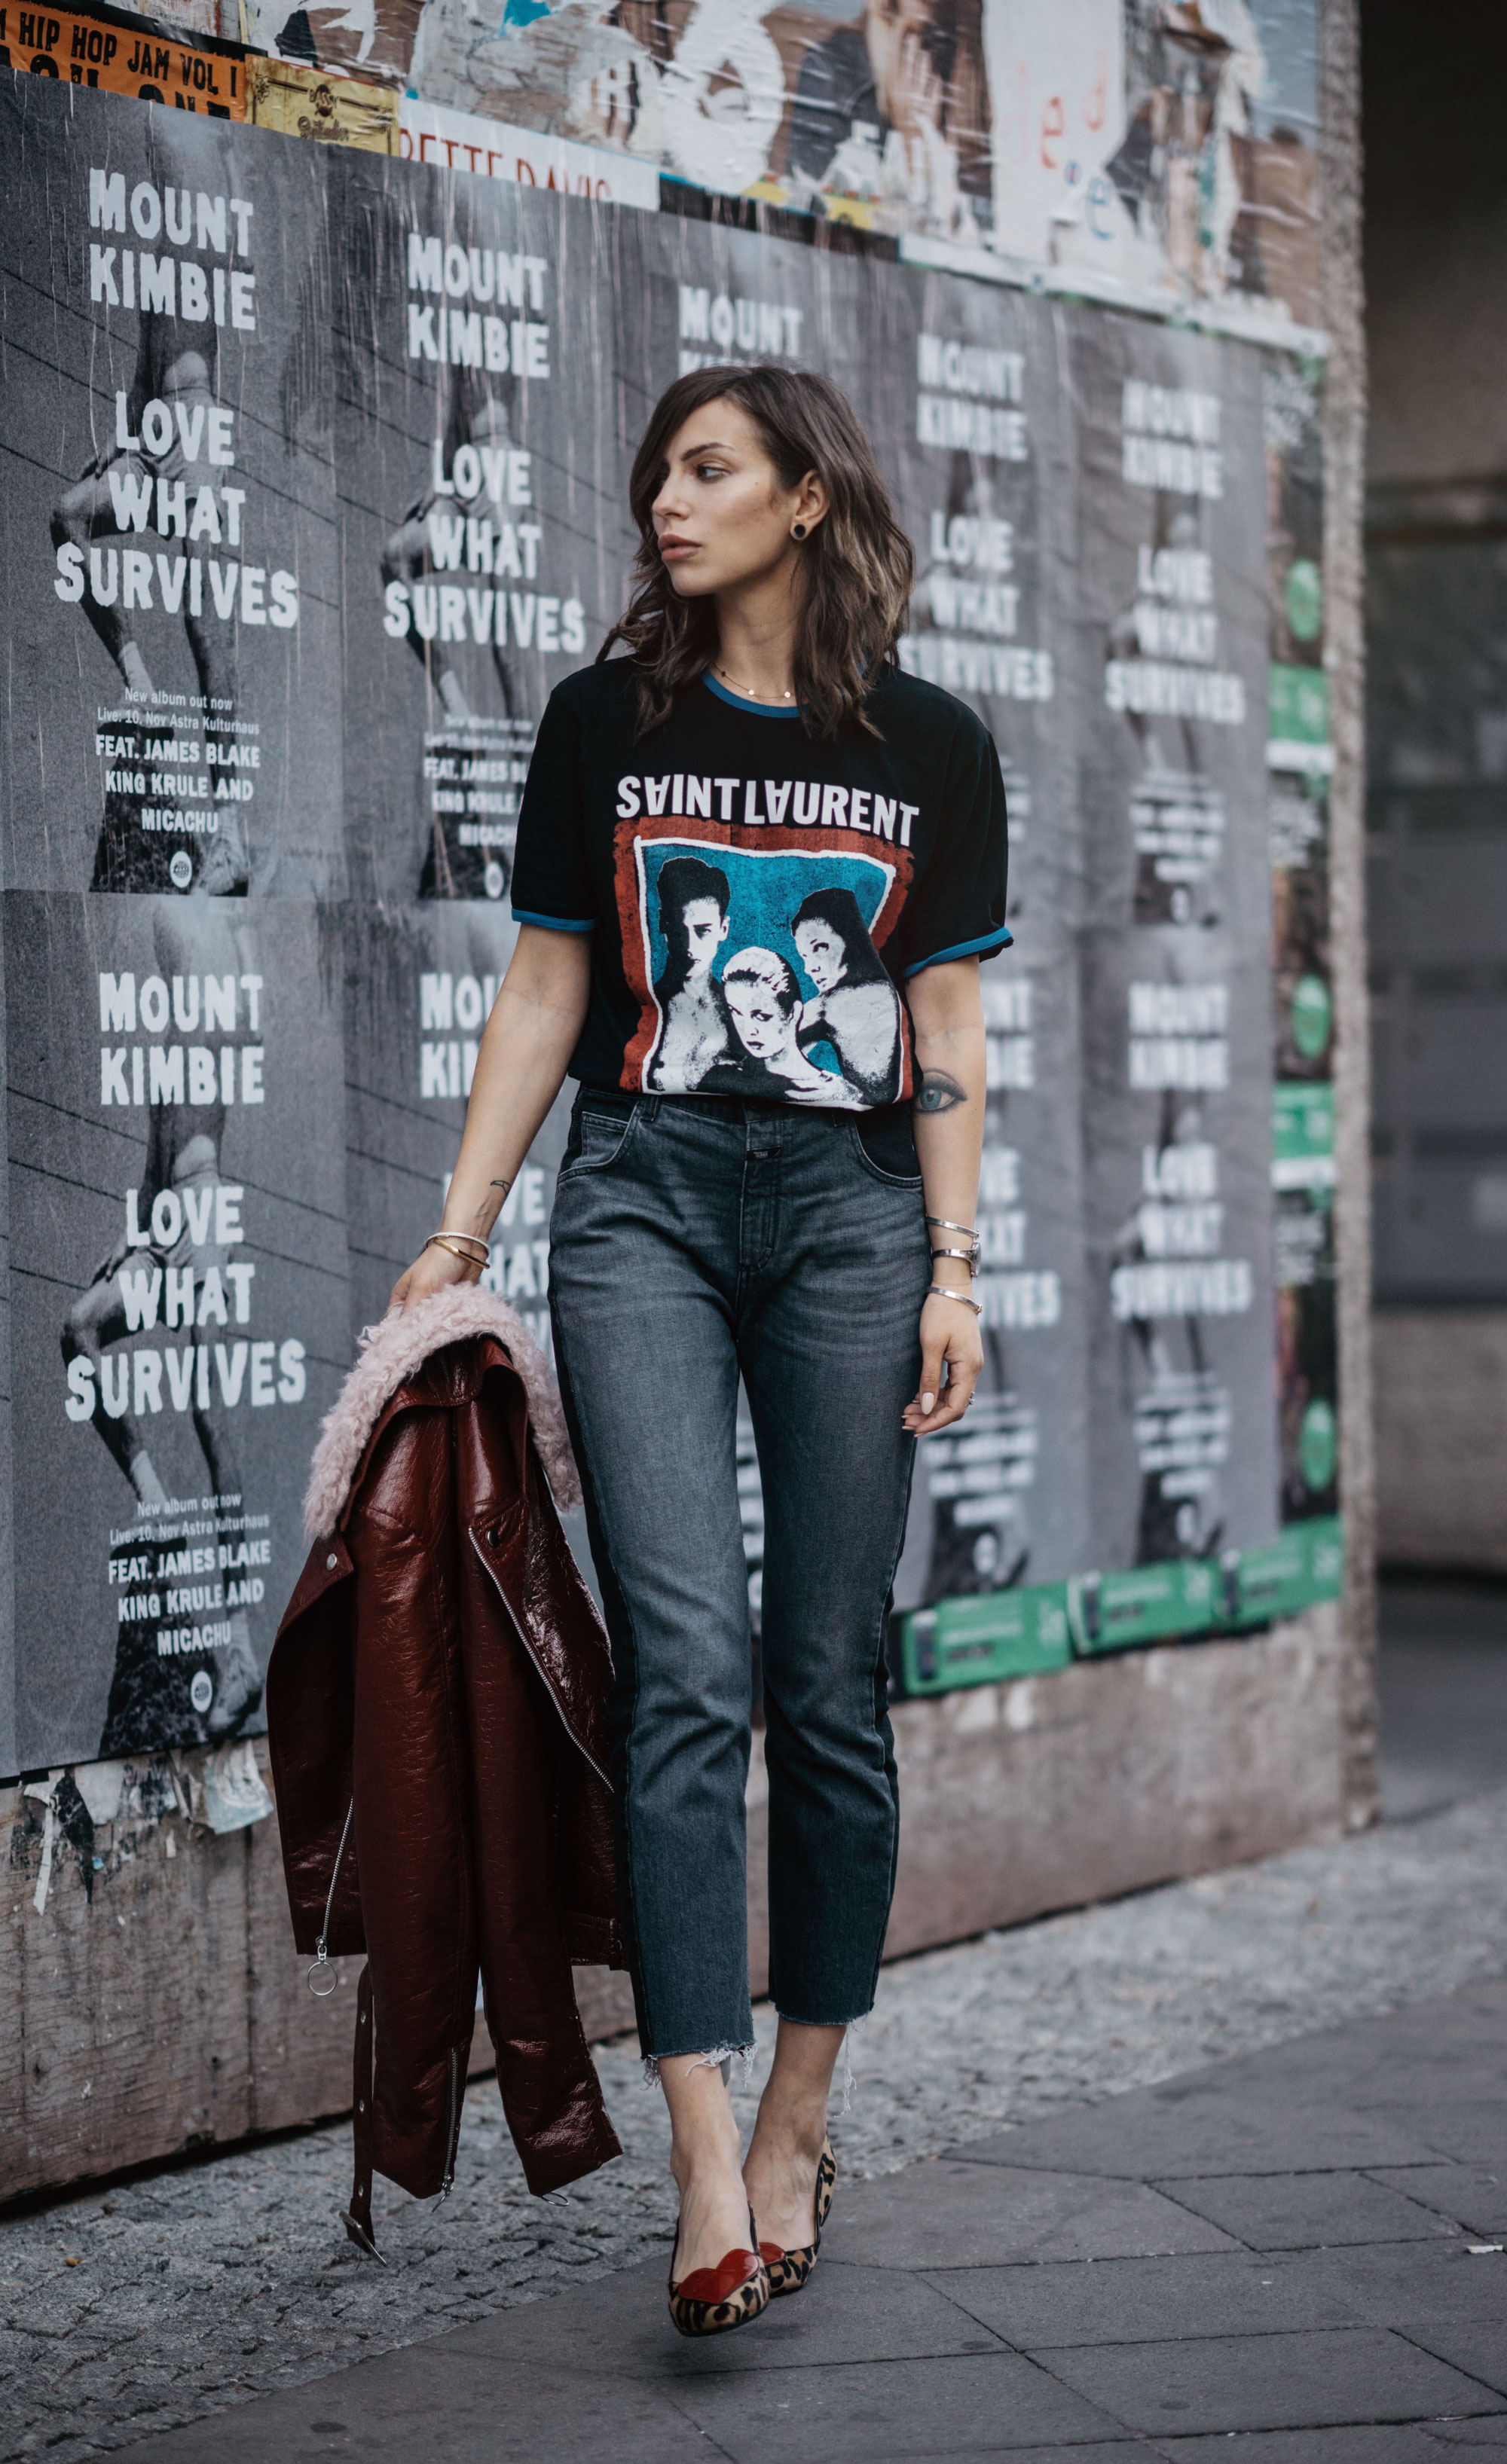 Street Style | brands: Saint Laurent, Navyboot, Closed Jeans | Berlin | Fashion Blogger | fashion style: edgy, cool, band shirt, dark